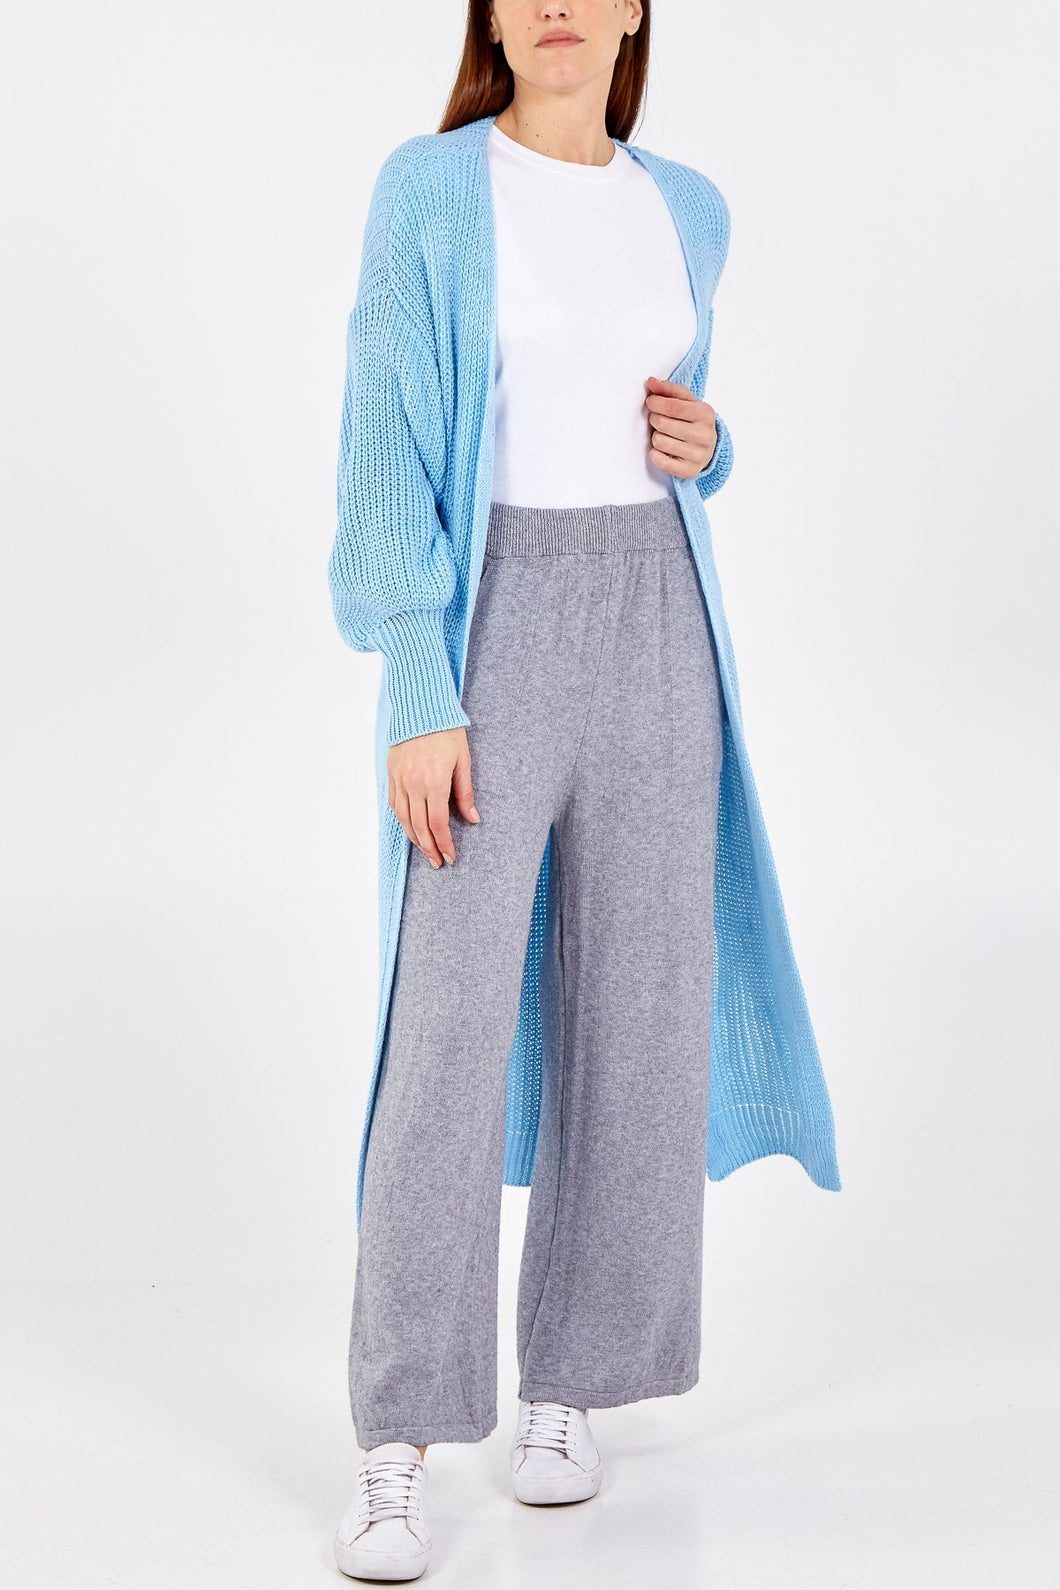 SKY BLUE LONG LINE CARDIGAN